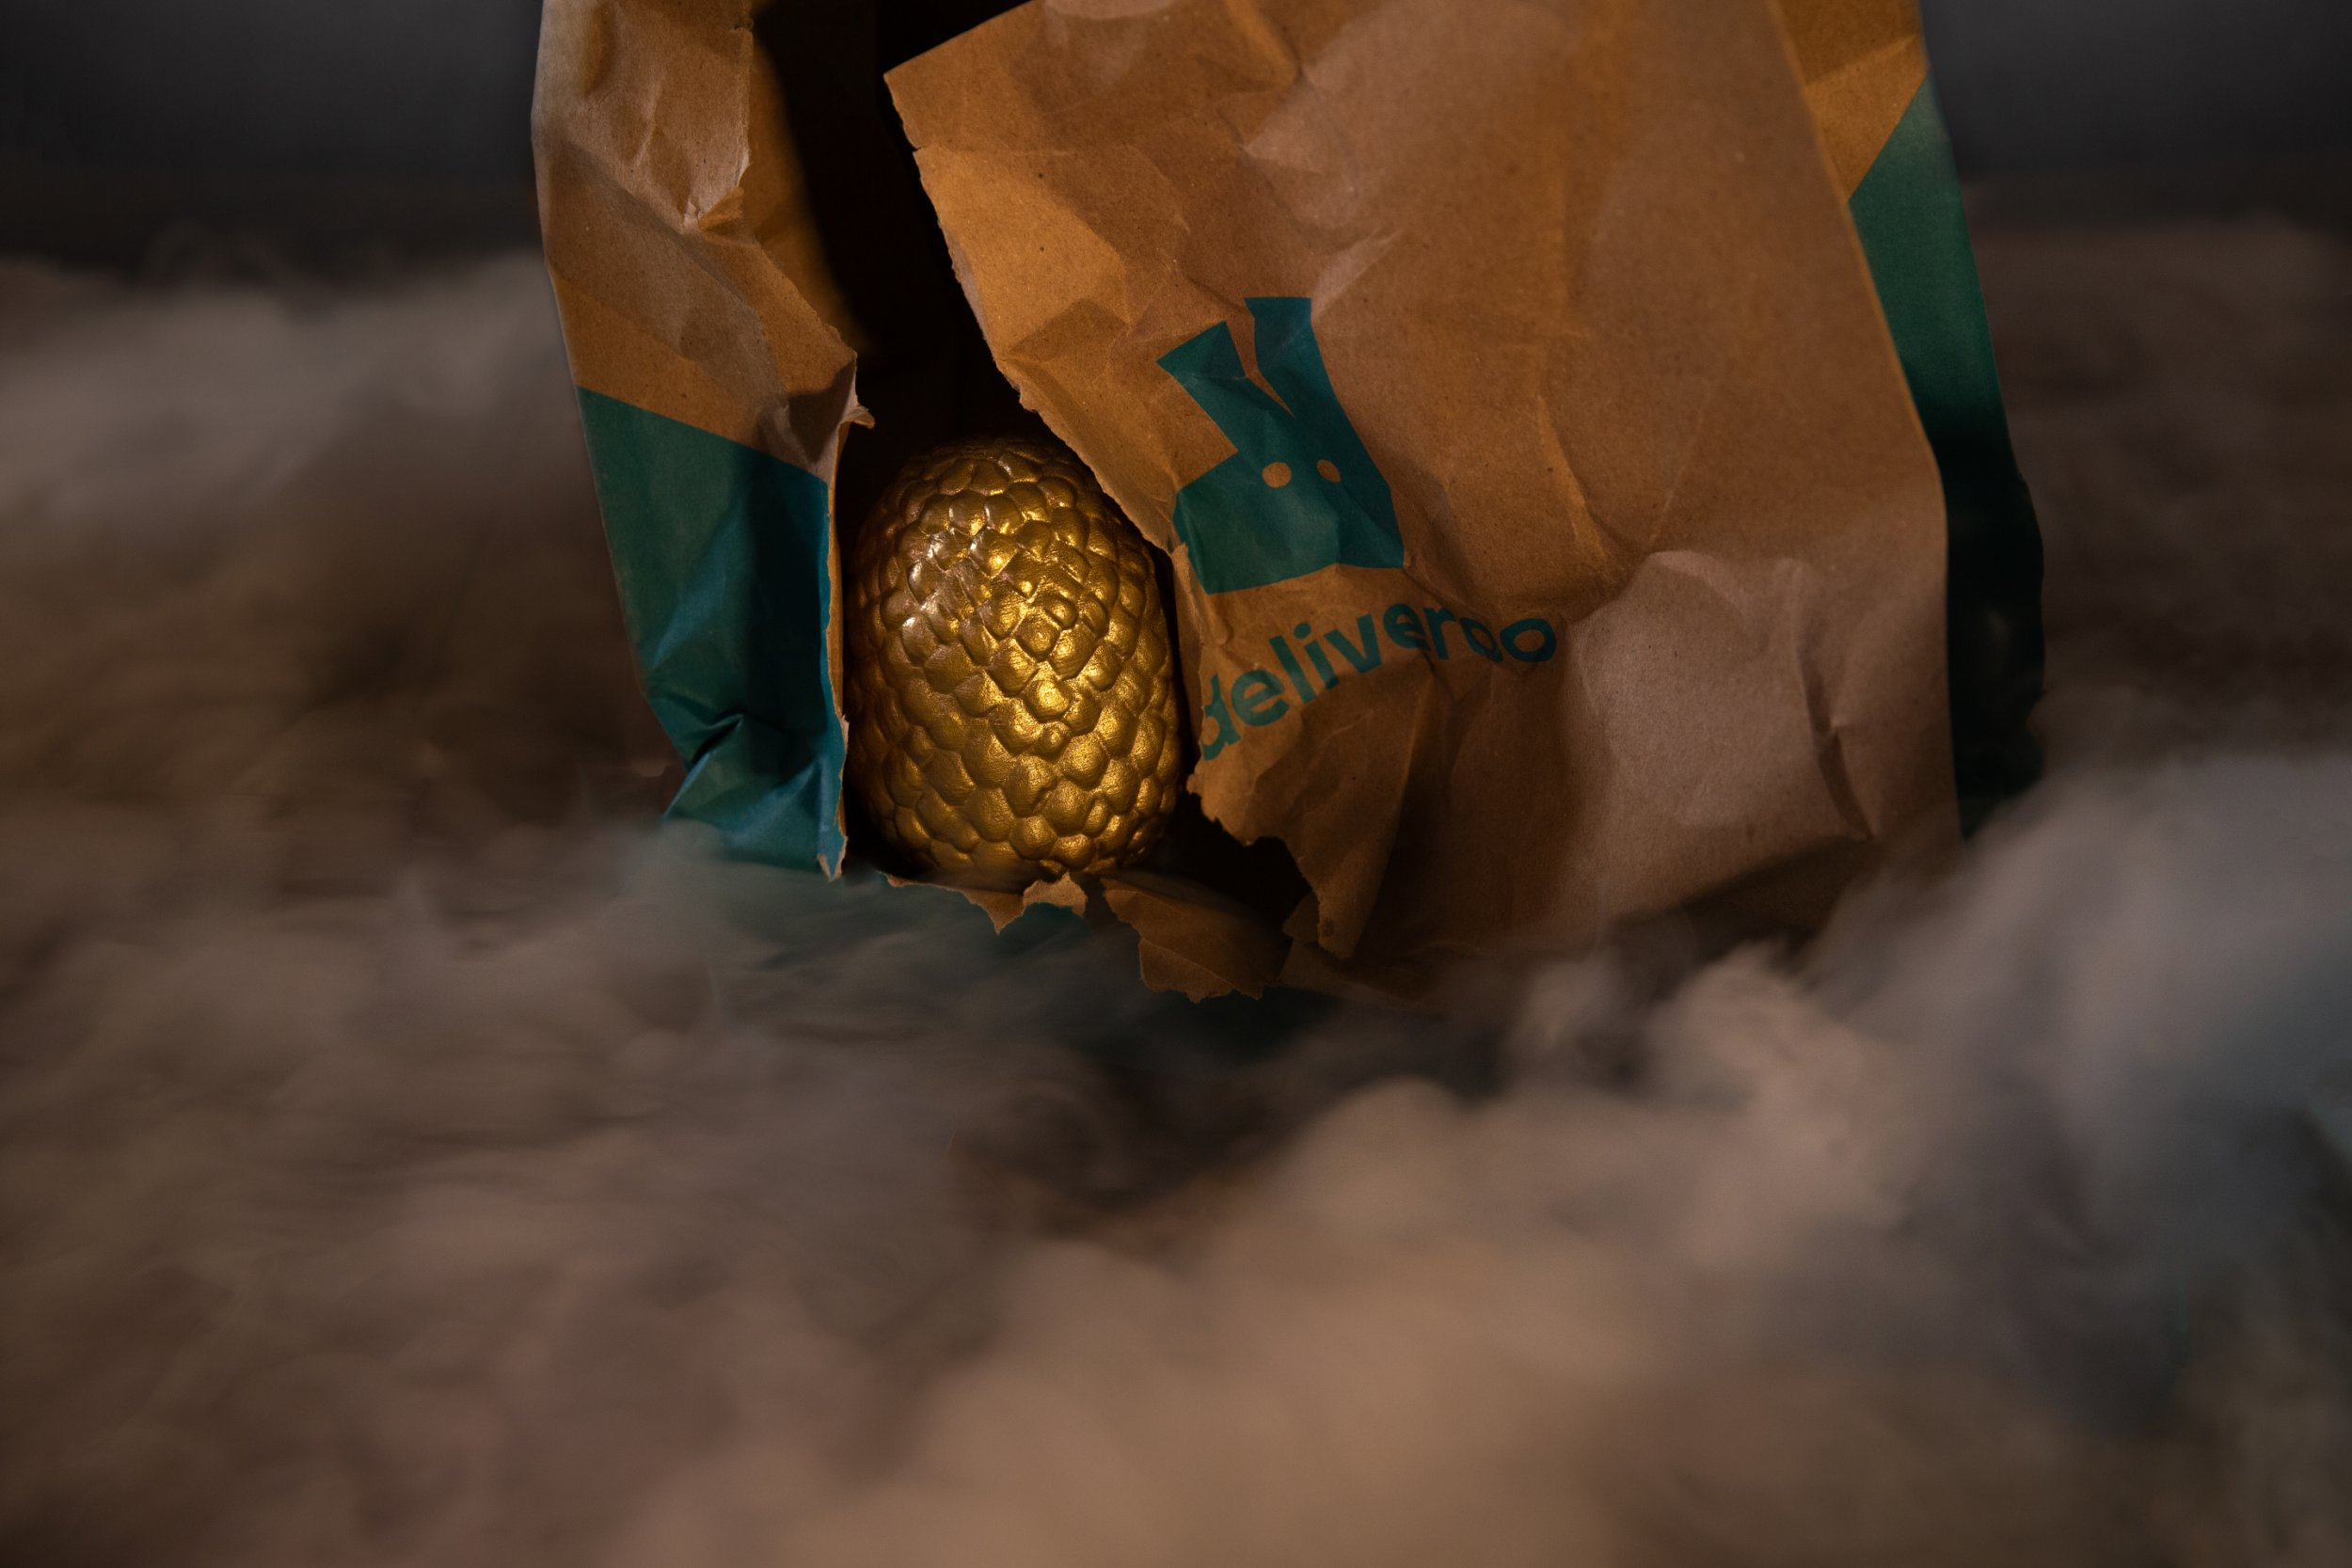 Deliveroo is celebrating the finale of Game of Thrones